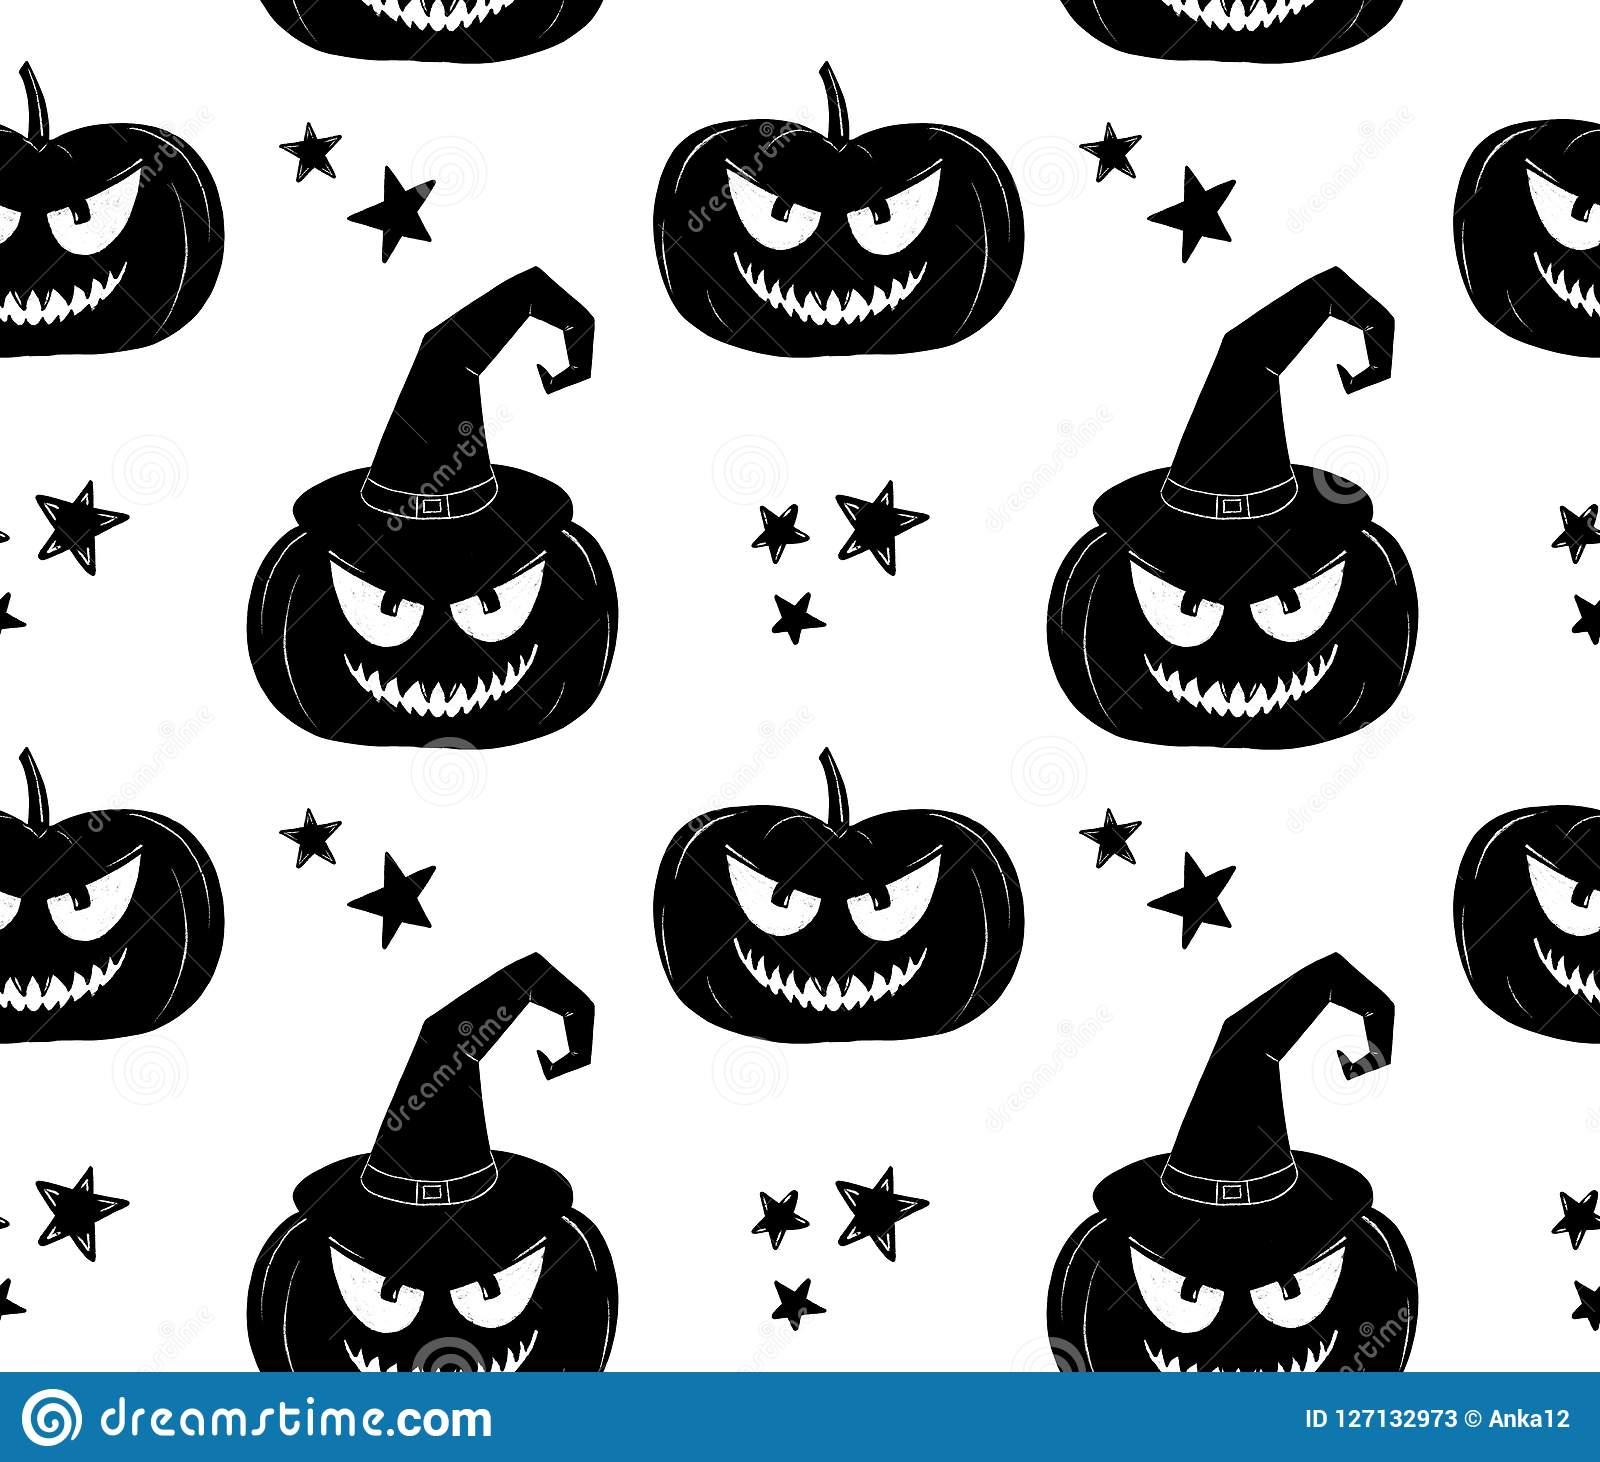 Halloween Pattern Black And White Witch Pumpkin Background Stock